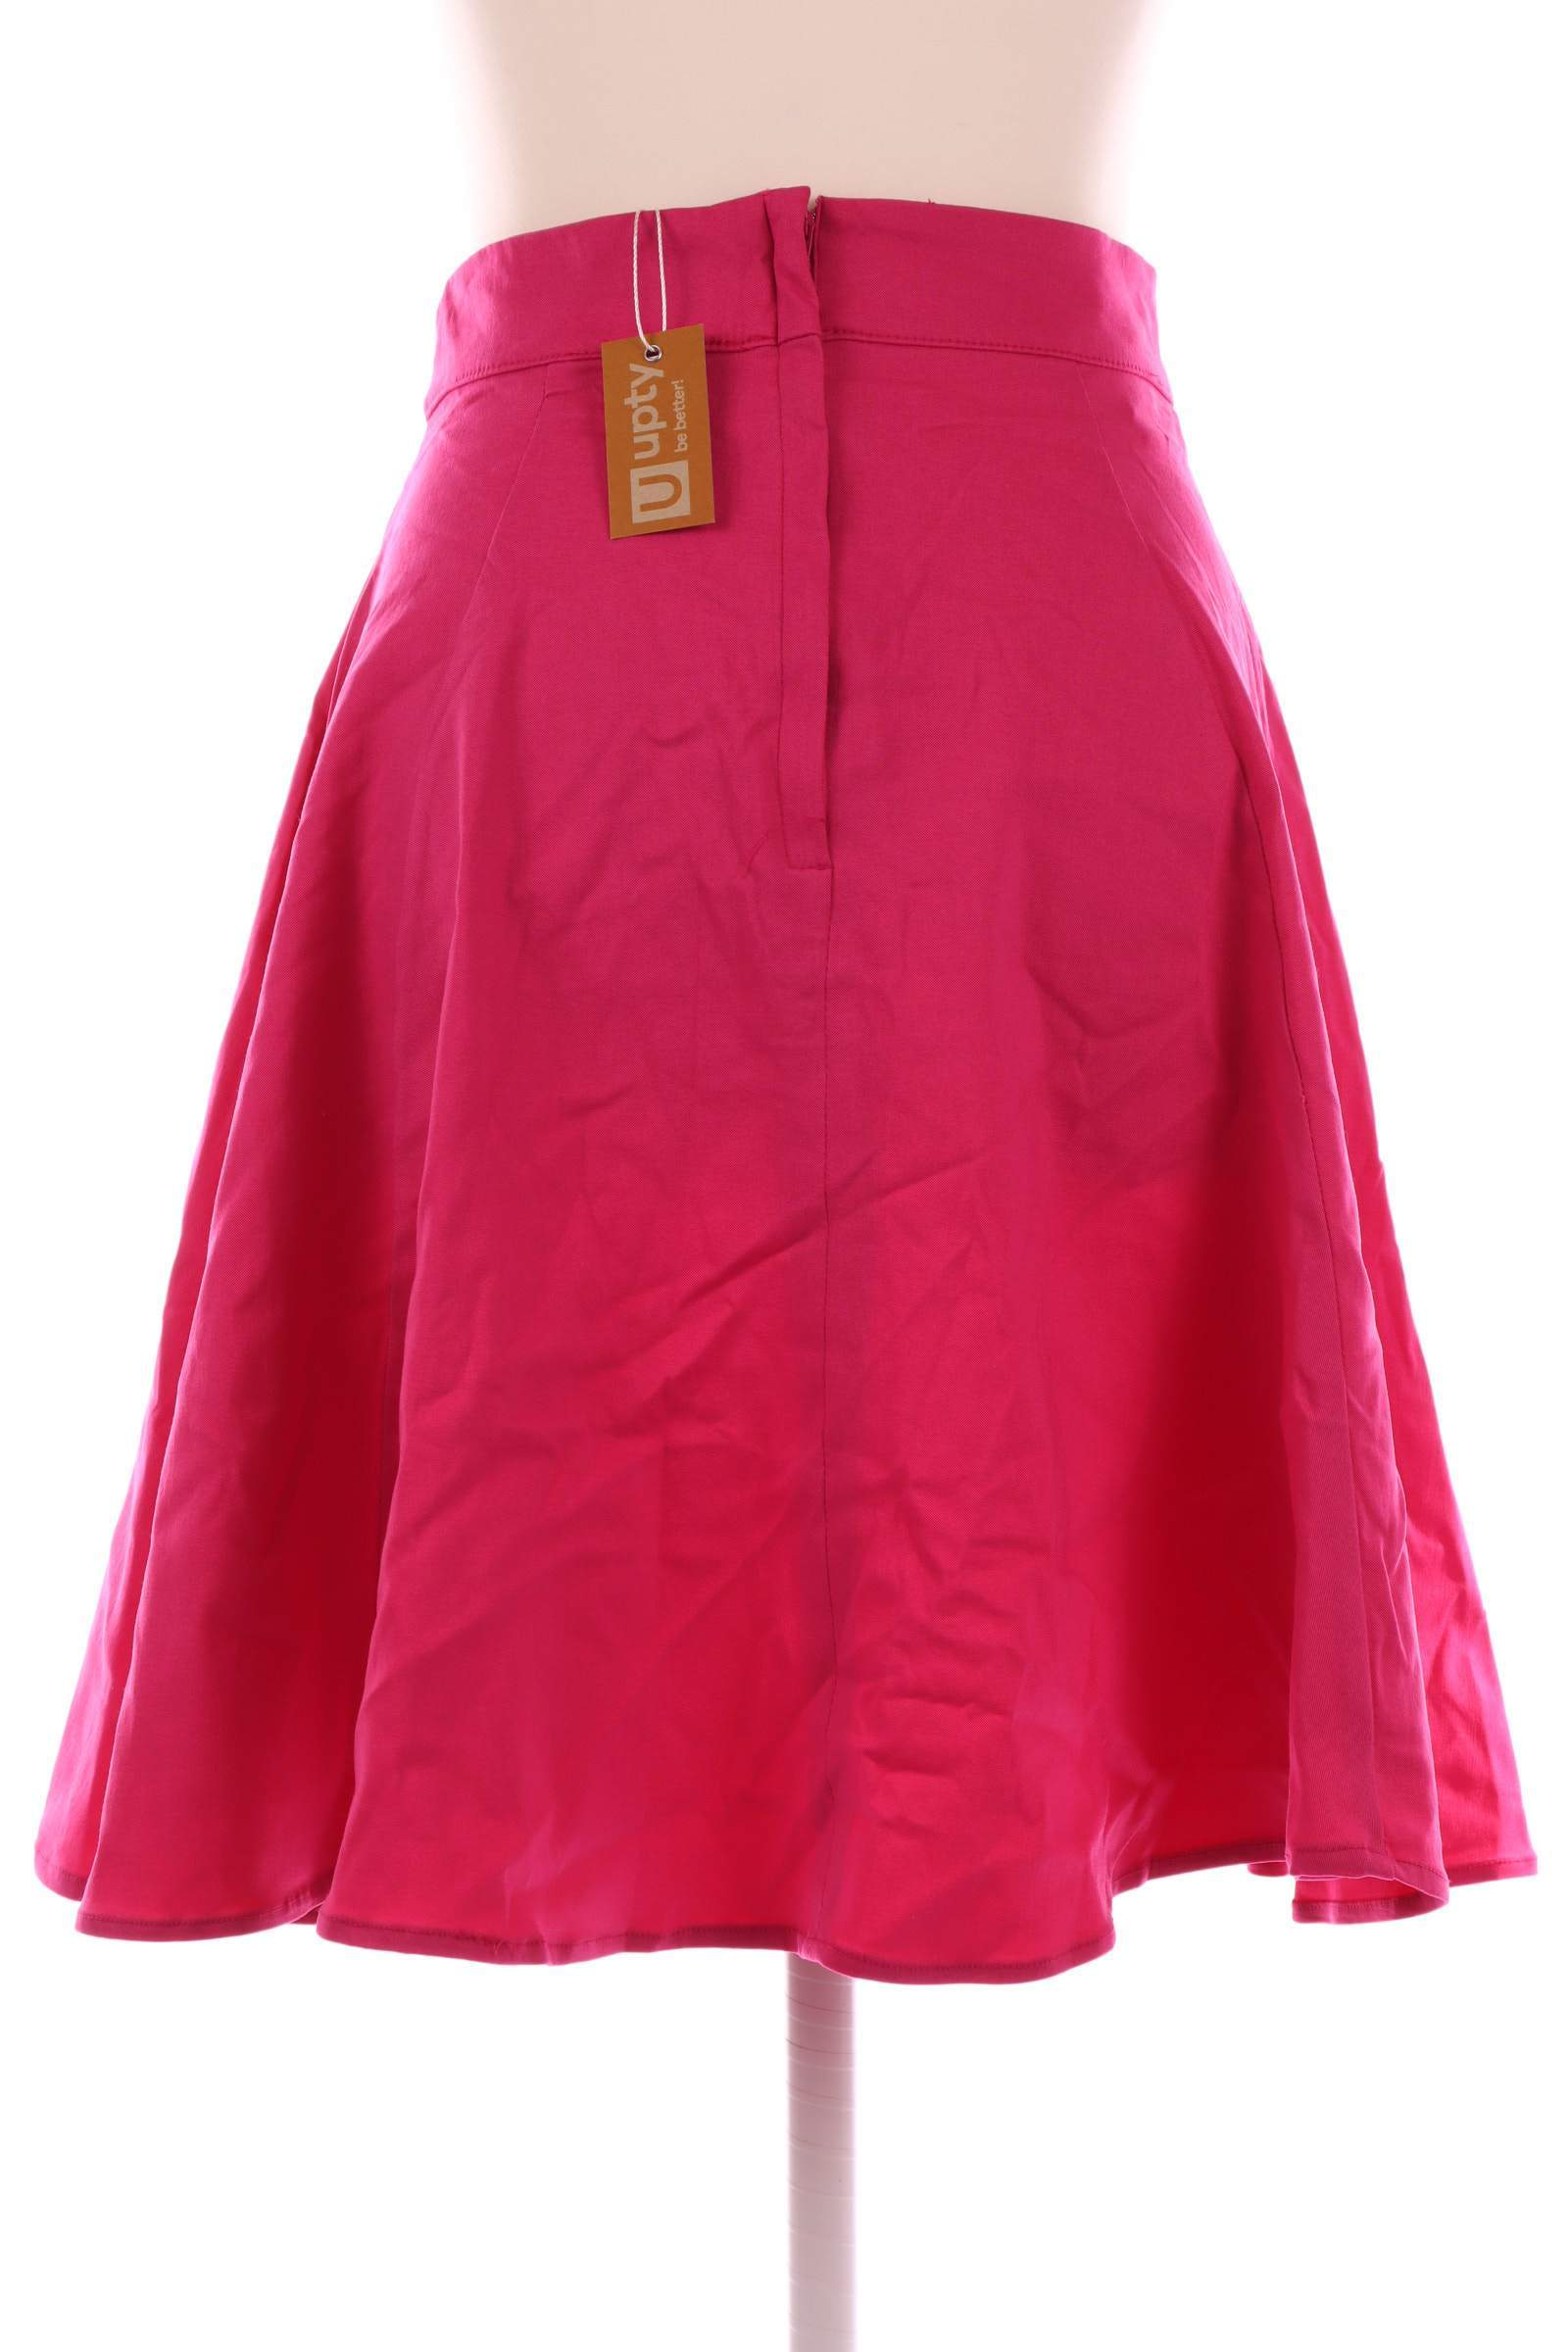 Collectif Pink Skirt - upty.store